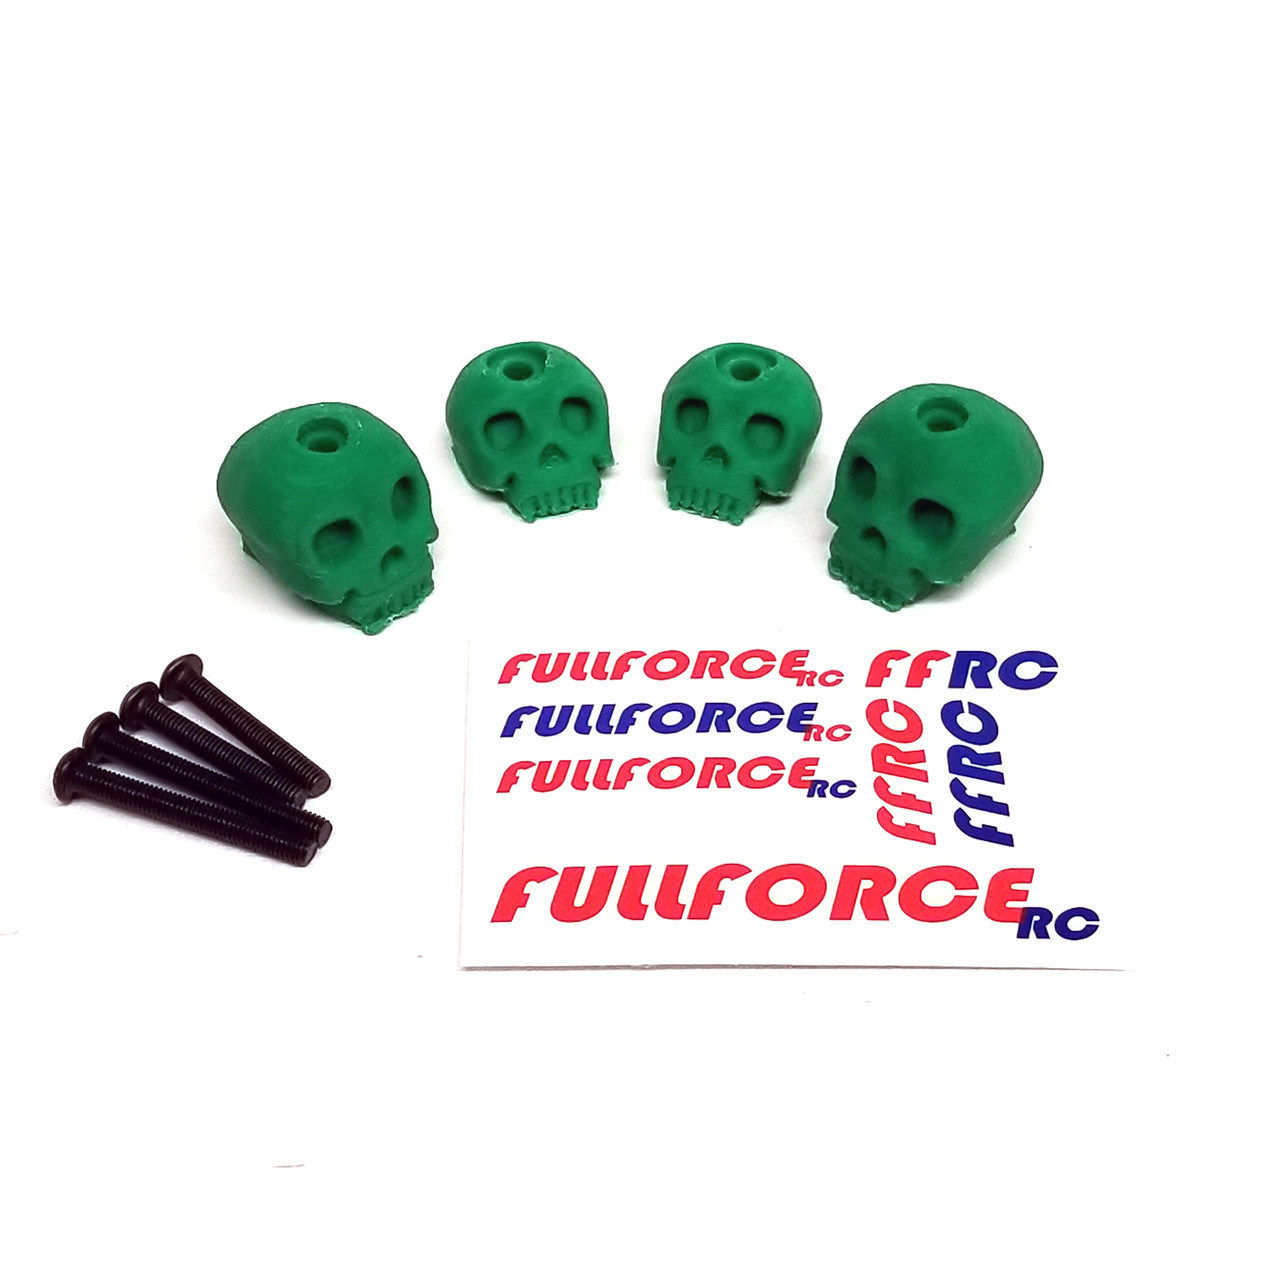 Traxxas X-MAXX Custom 3D printed skull body washers by Fullforce RC.  Complete with hardware.  4 PACK Green version.